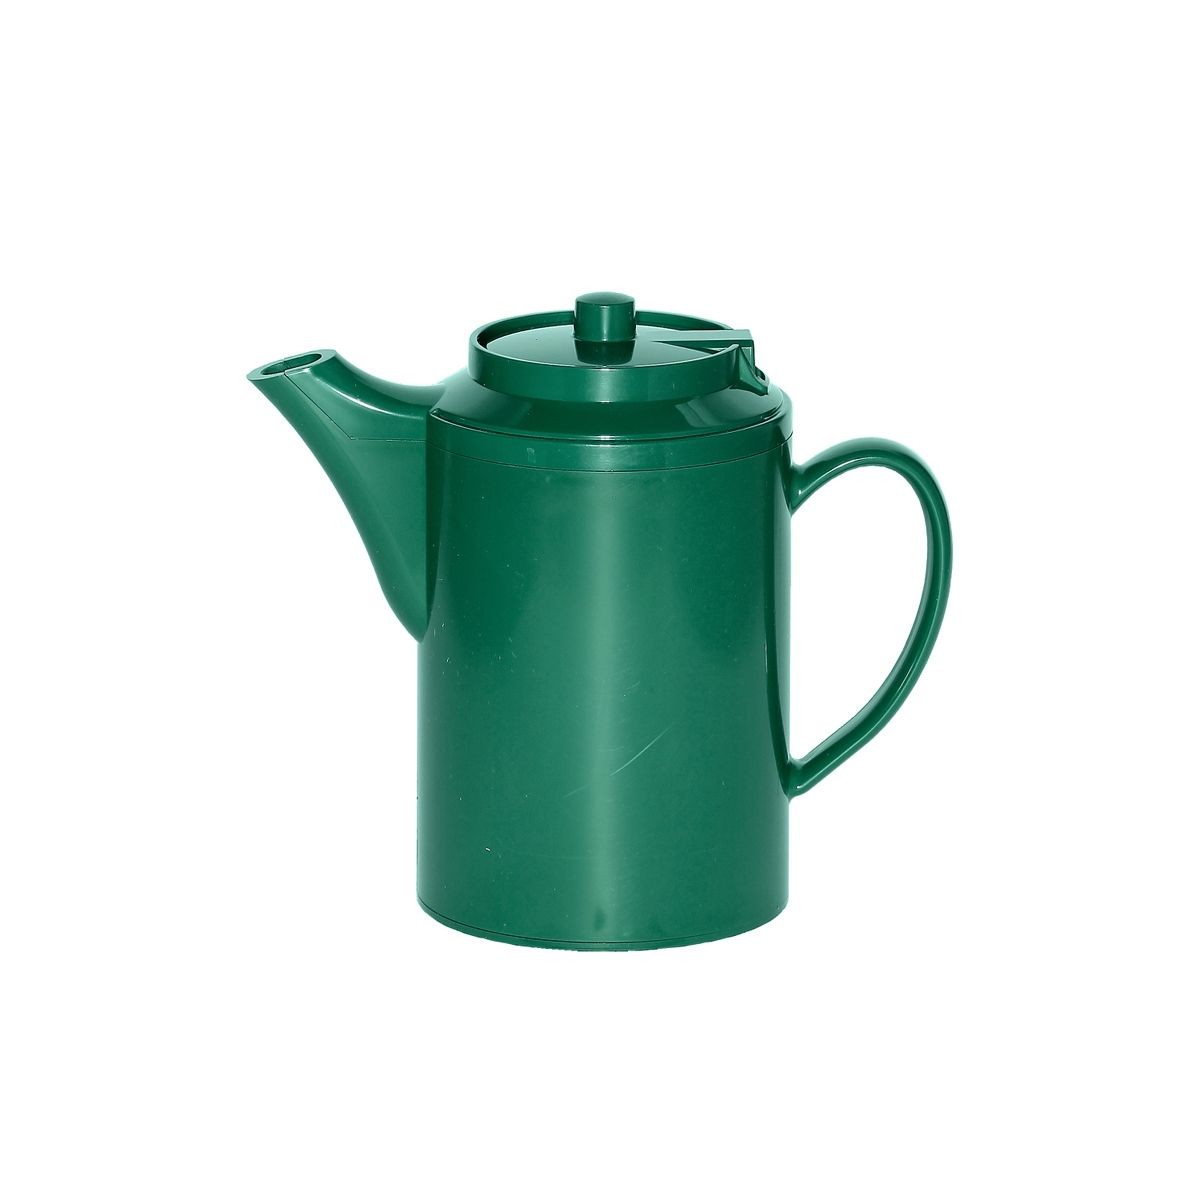 Service Ideas TS612FG Dripless Teapot with Baffled Spout, Self-Locking Lid, Forest Green 16 oz.